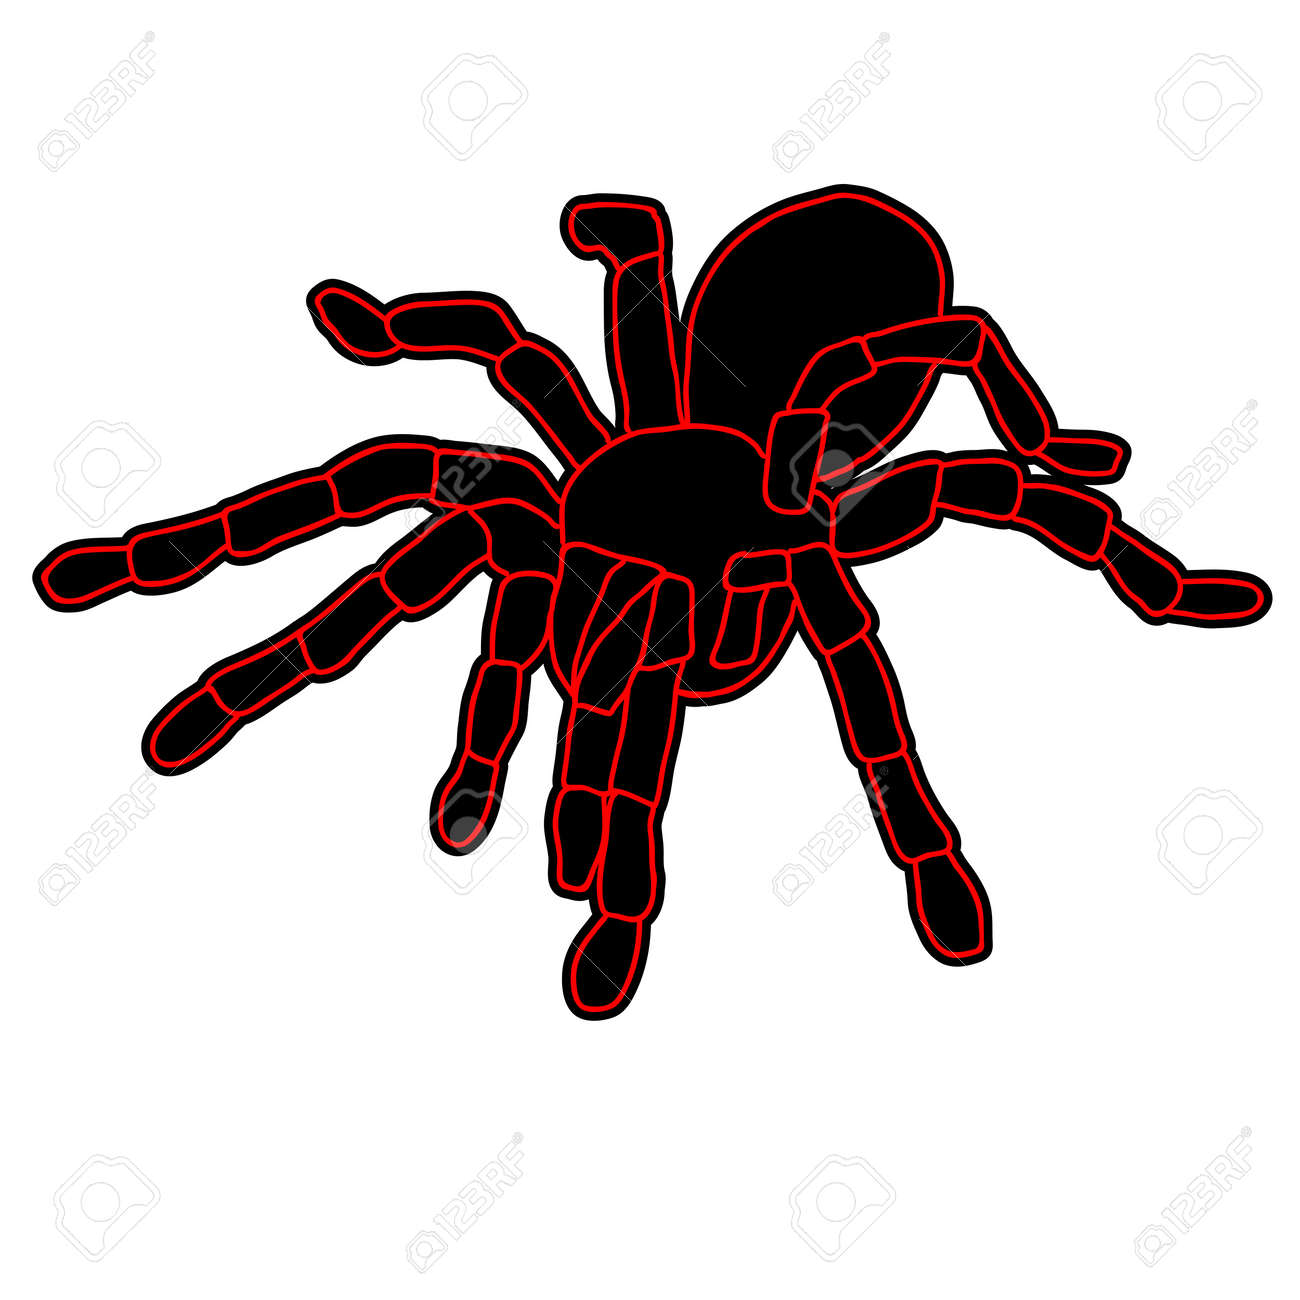 Tattoo of black widow isolated on white background. Stock Vector - 11930929